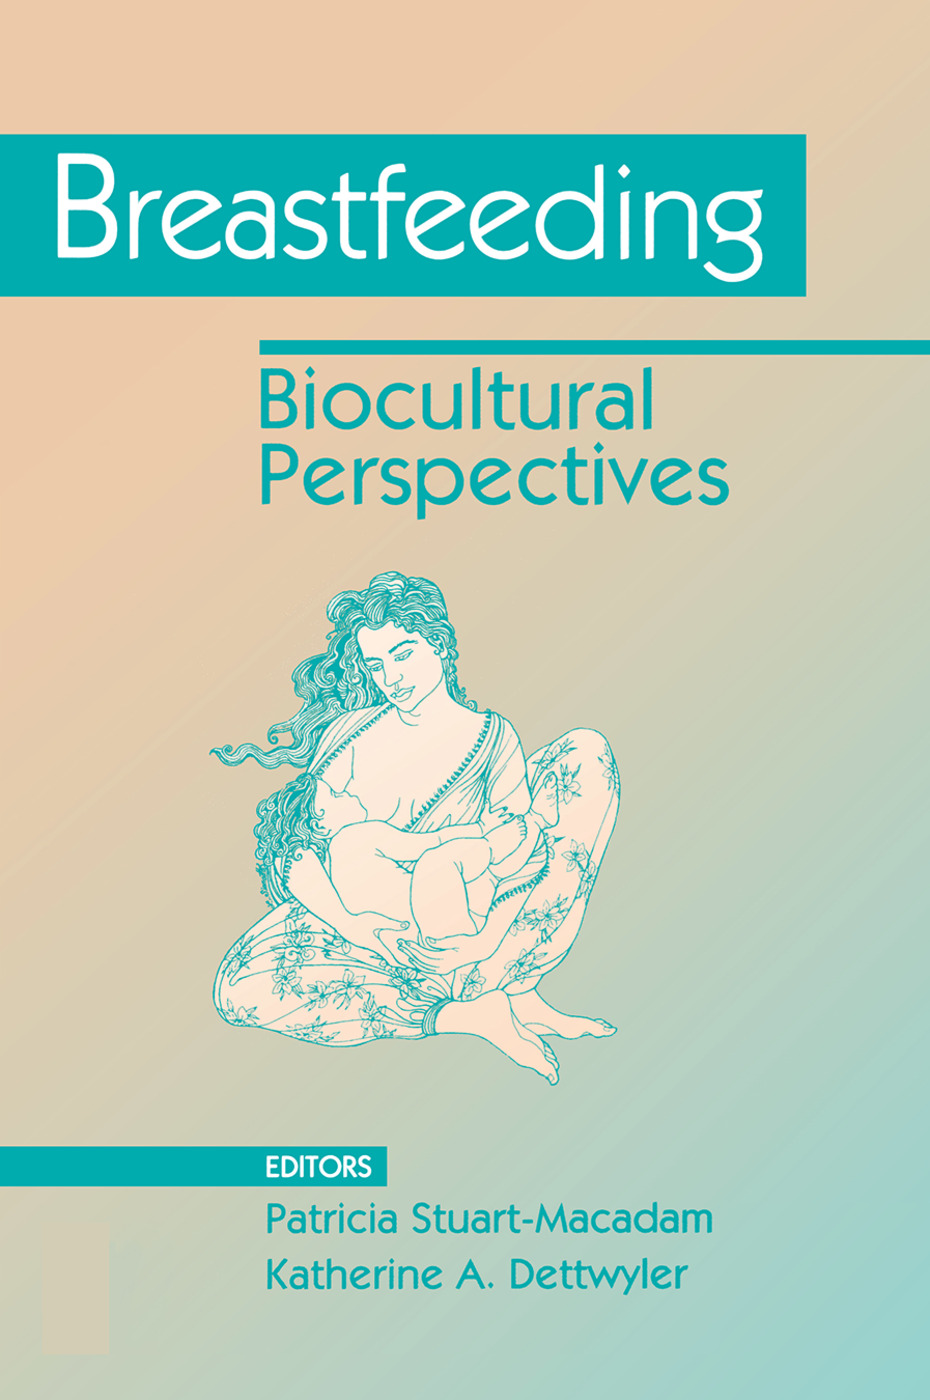 Beauty and the Breast: The Cultural Context of Breastfeeding in the United States